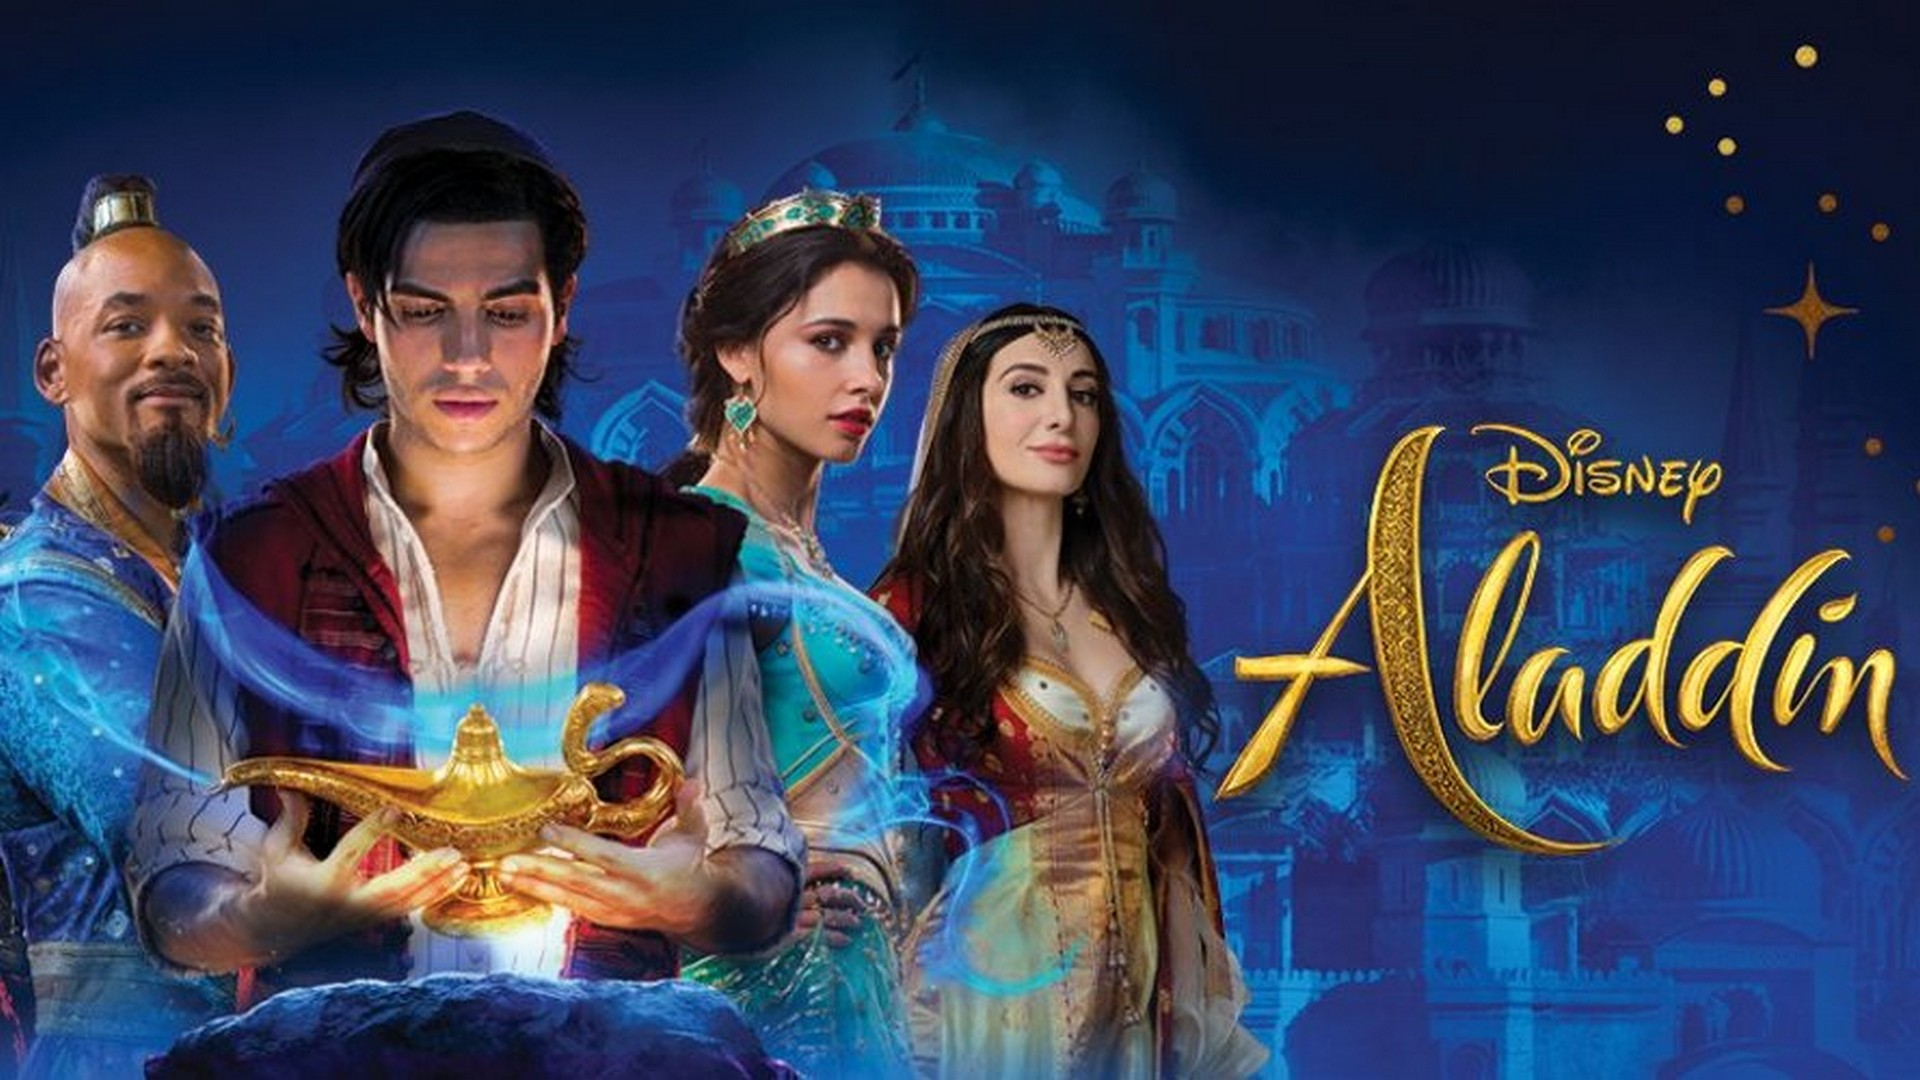 aladdin-2019-wallpaper-hd.jpg